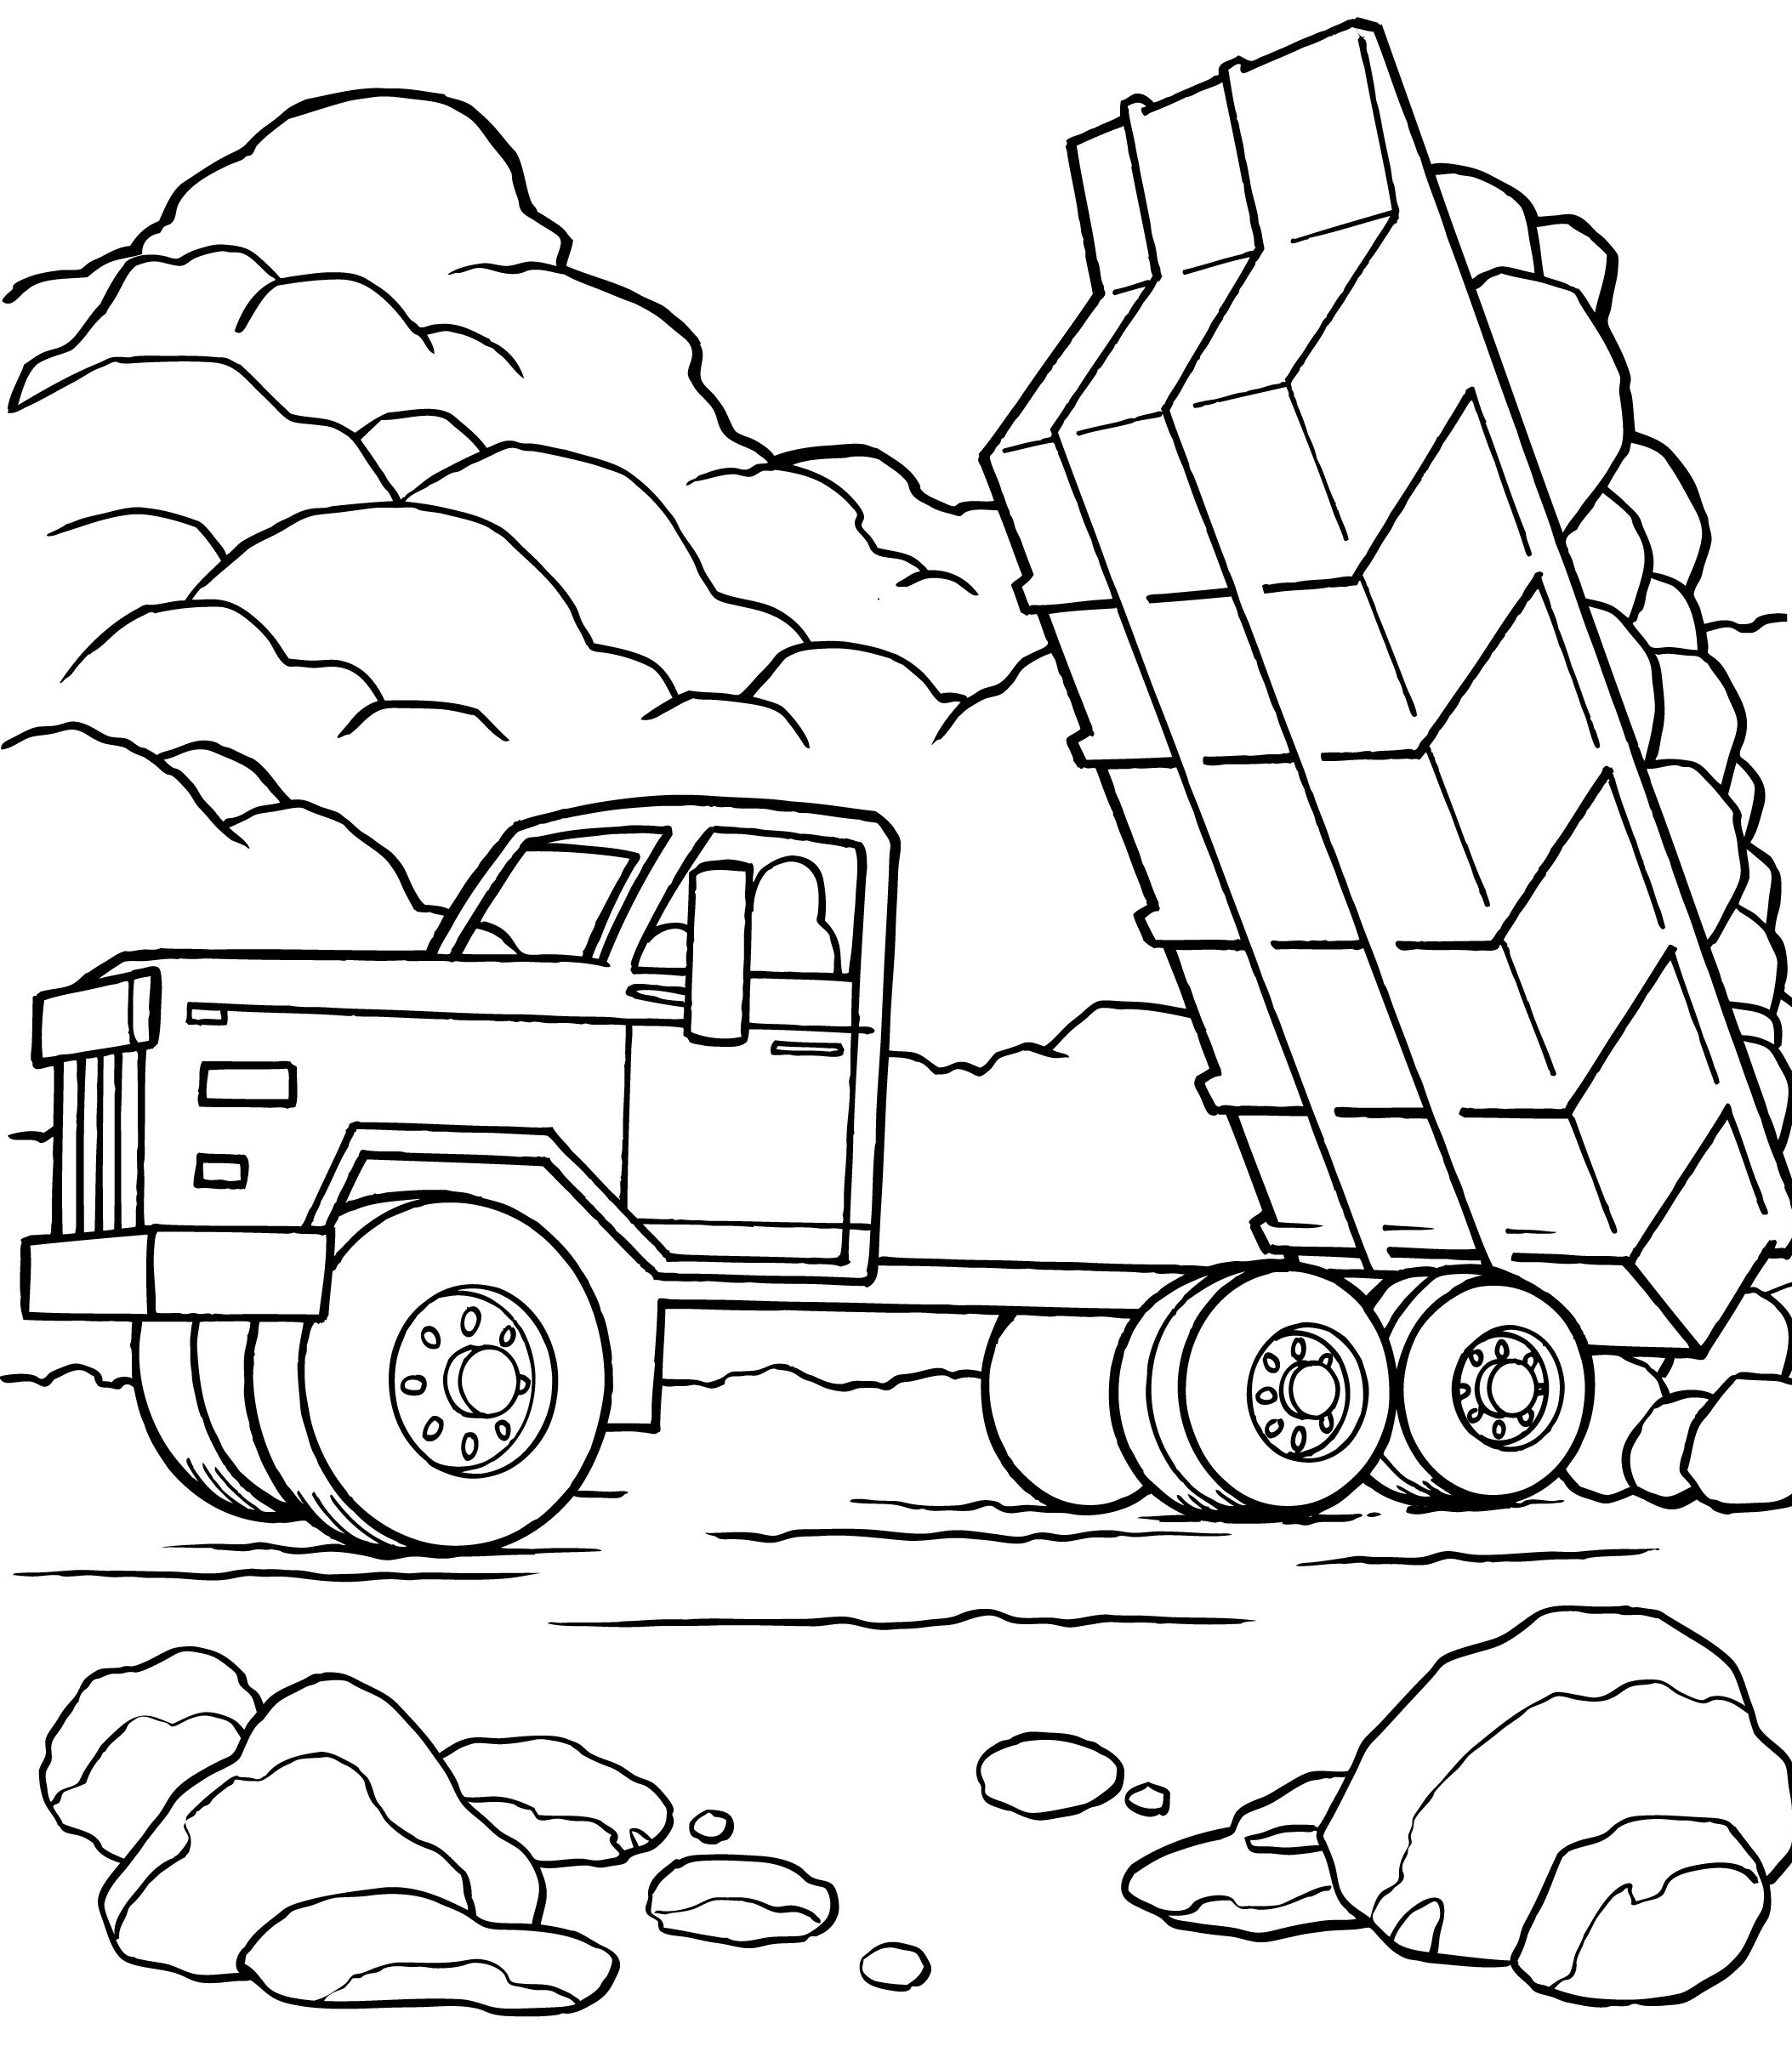 Chevy Truck Drawing At Free For Personal Use 63 Wiring Diagram 2107x2426 Old Coloring Pages Draw To Color